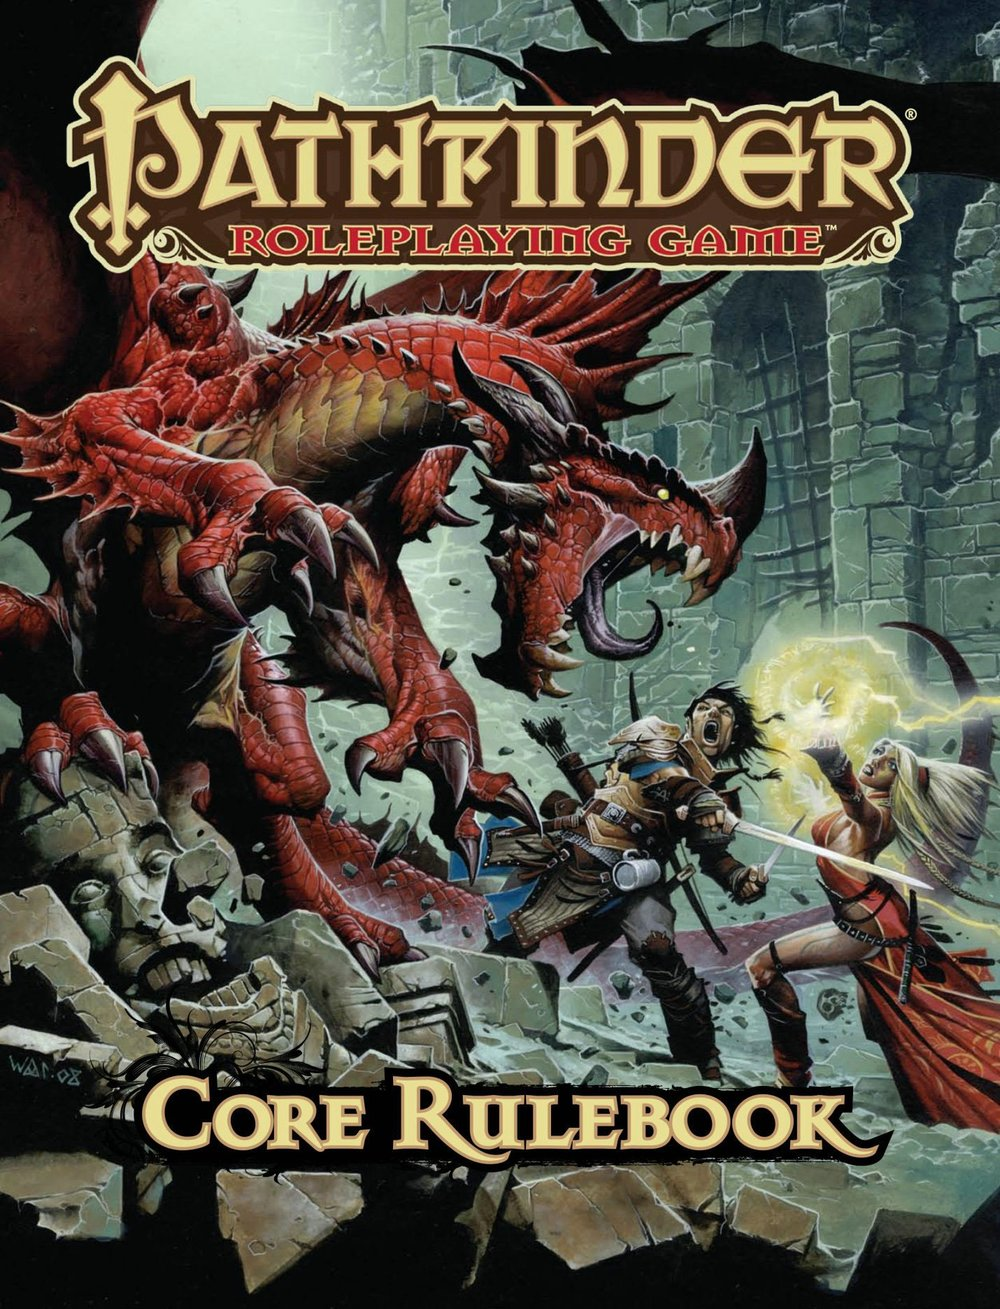 Pathfinder's Core Rulebook, clocking in at nearly 600 pages